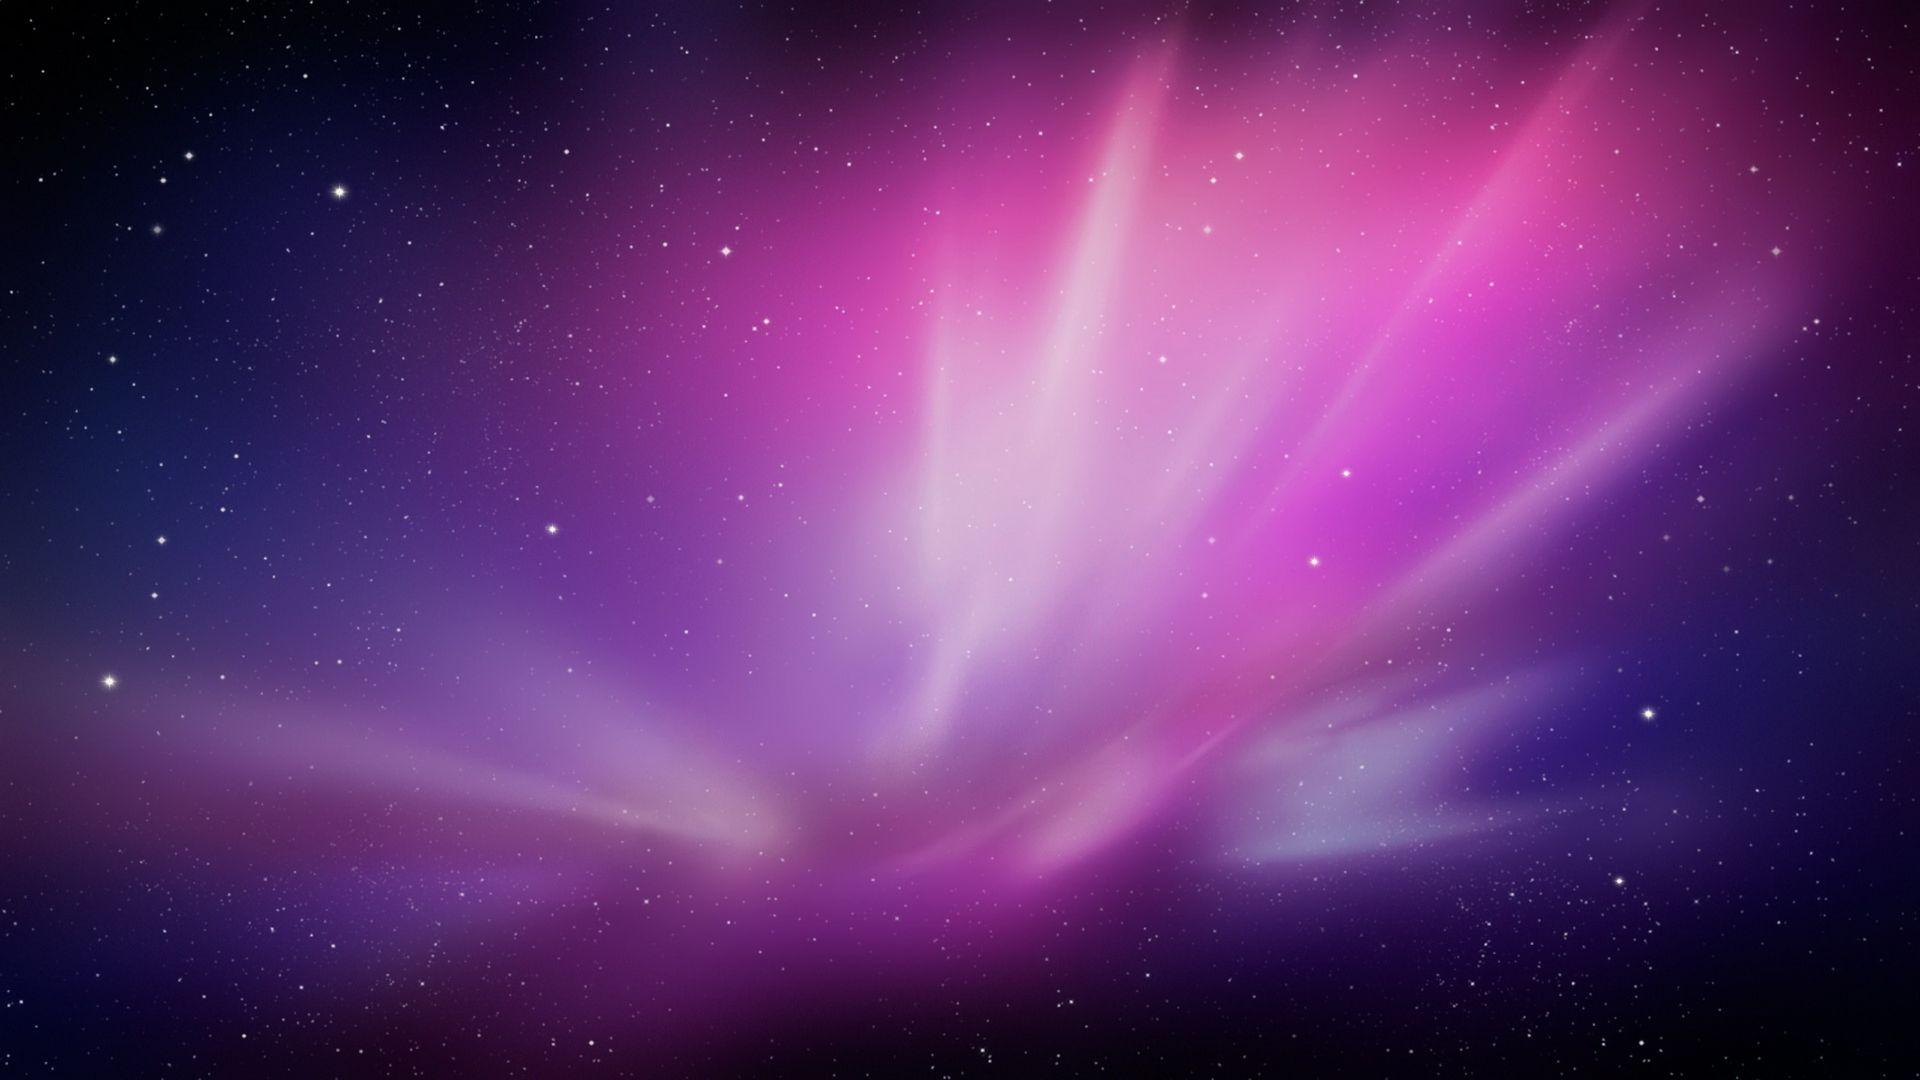 Mac wallpapers 1920x1080 wallpaper cave - Mac os x wallpaper 1920x1080 ...